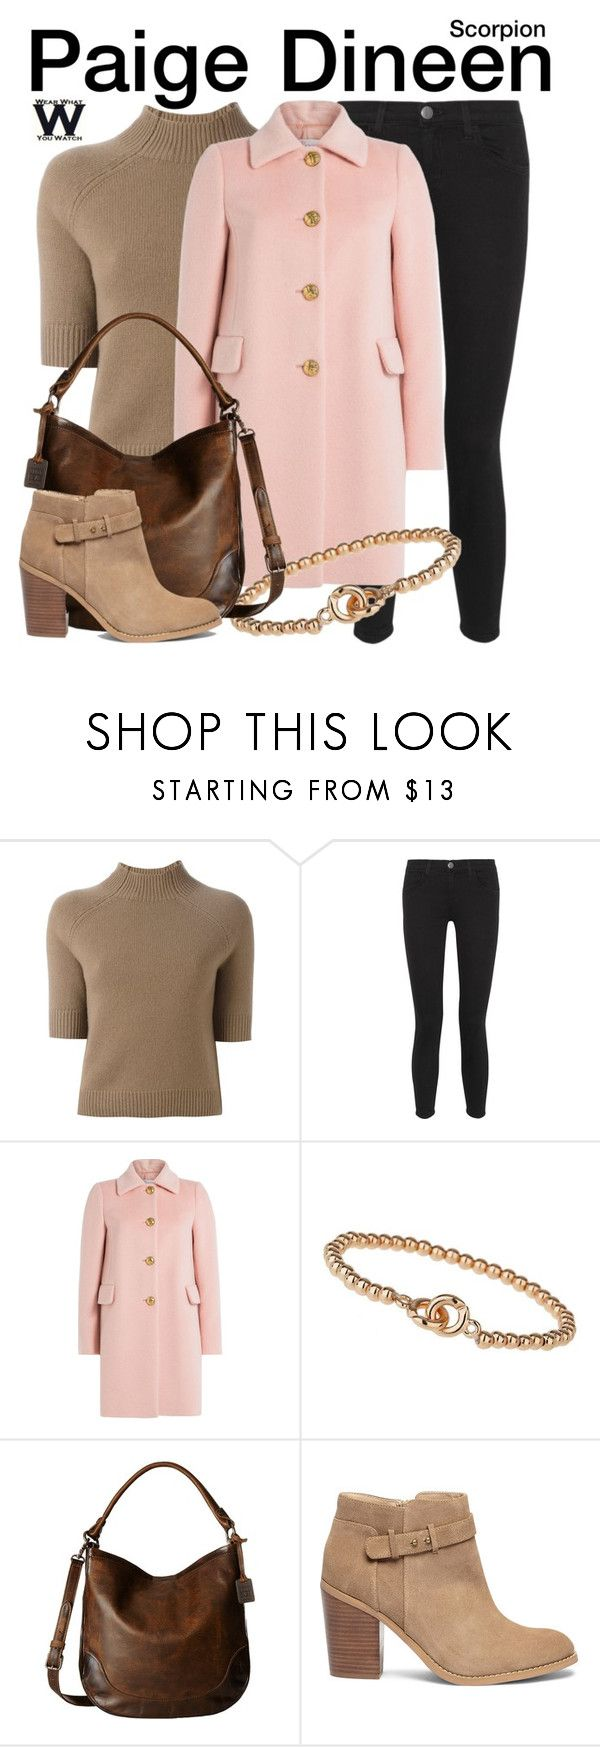 """""""Scorpion"""" by wearwhatyouwatch ❤ liked on Polyvore featuring Theory, Current/Elliott, RED Valentino, Miss Selfridge, Frye, Sole Society, television and wearwhatyouwatch"""